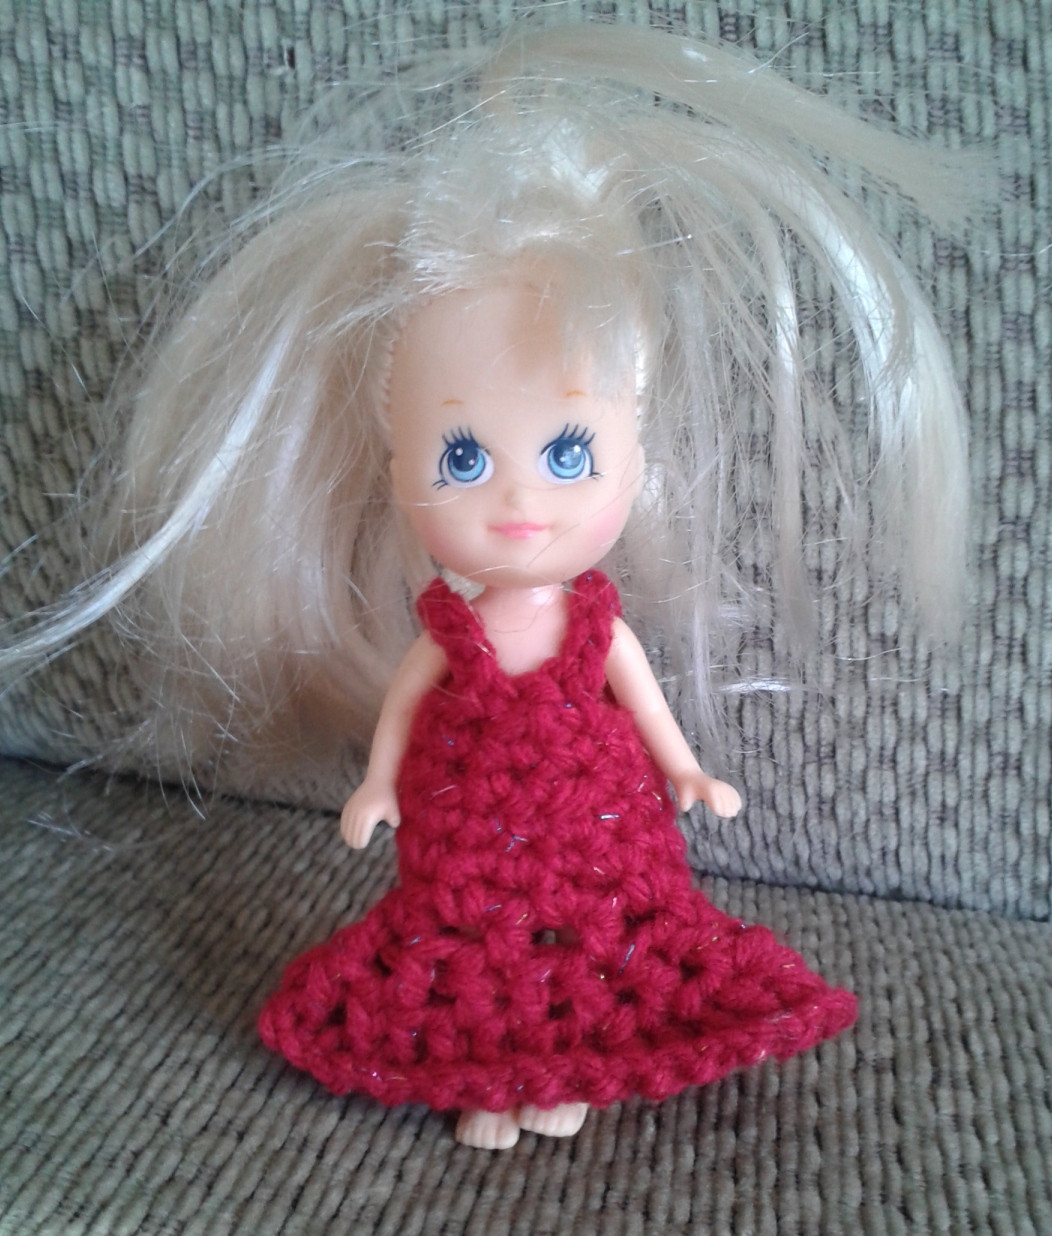 Doll Patterns Inspirational Small Doll Clothing Free Patterns Of Doll Patterns Best Of My Rag Doll Adorable Dolls to Sew